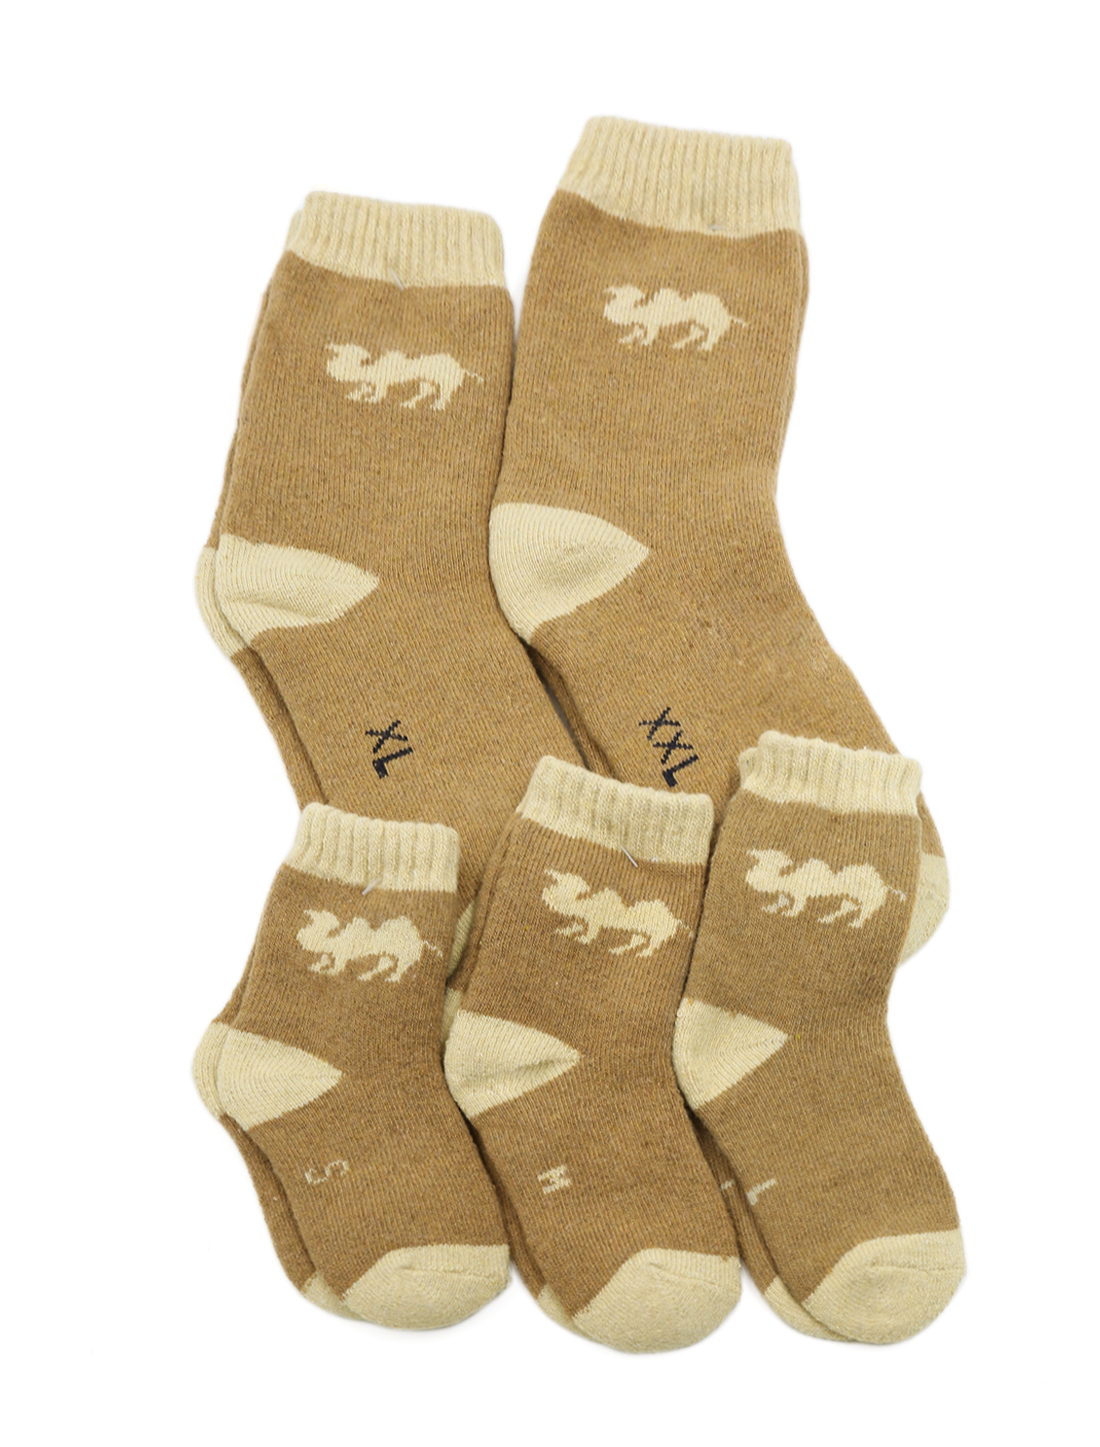 Family Matching Camel Pattern Knit Ankle High Socks 5 Pairs Brown